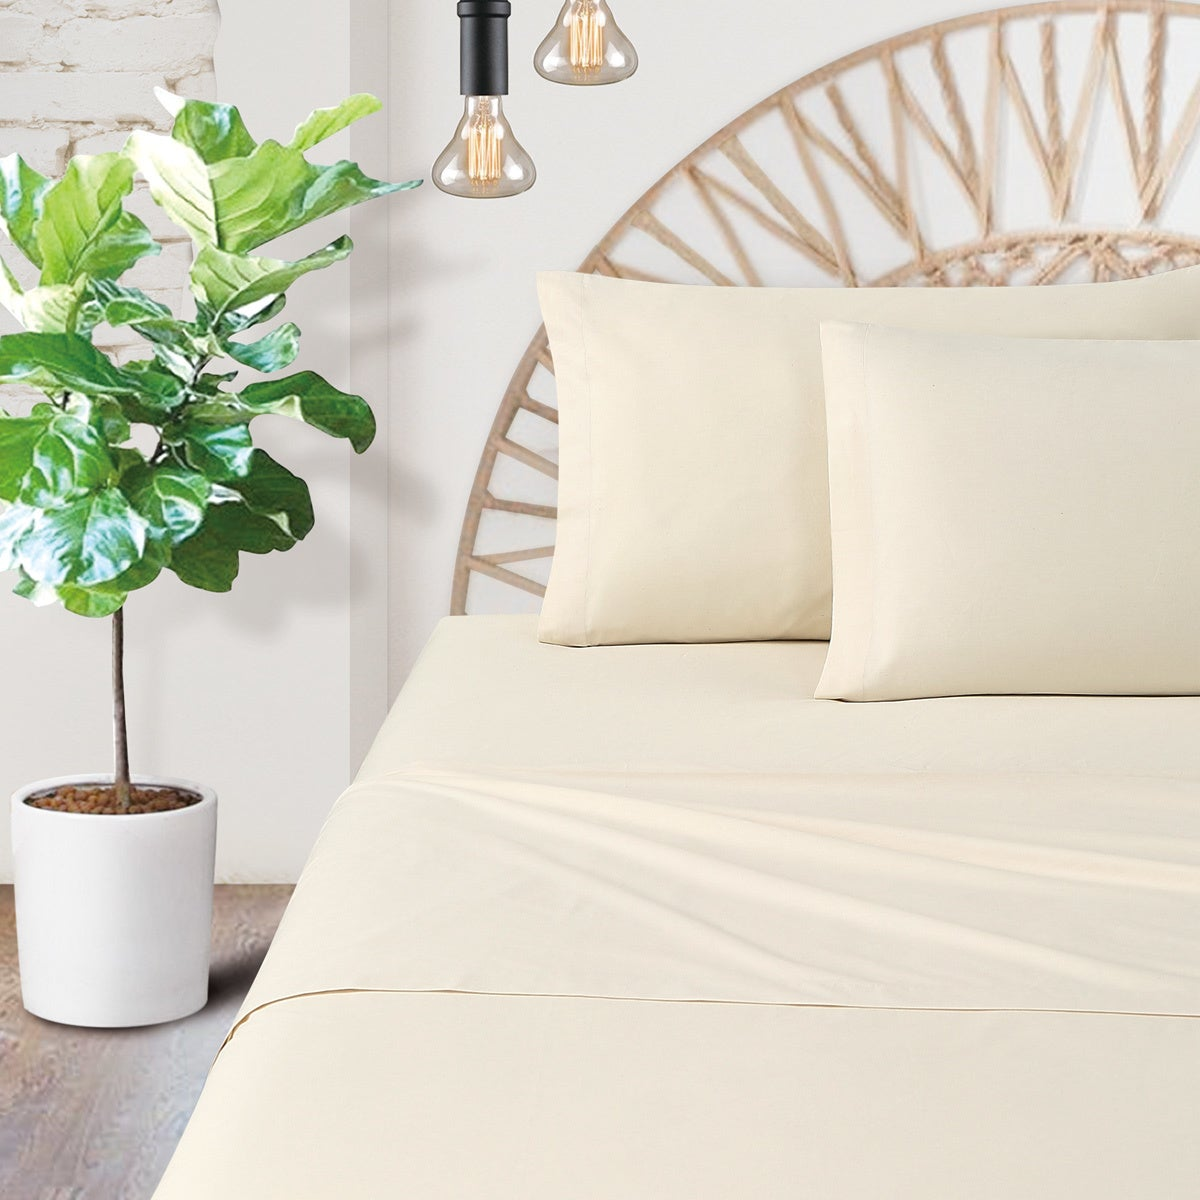 Certified Organic Cotton Percale 200 Thread Count Bed Sheet Set On Sale Overstock 18215540